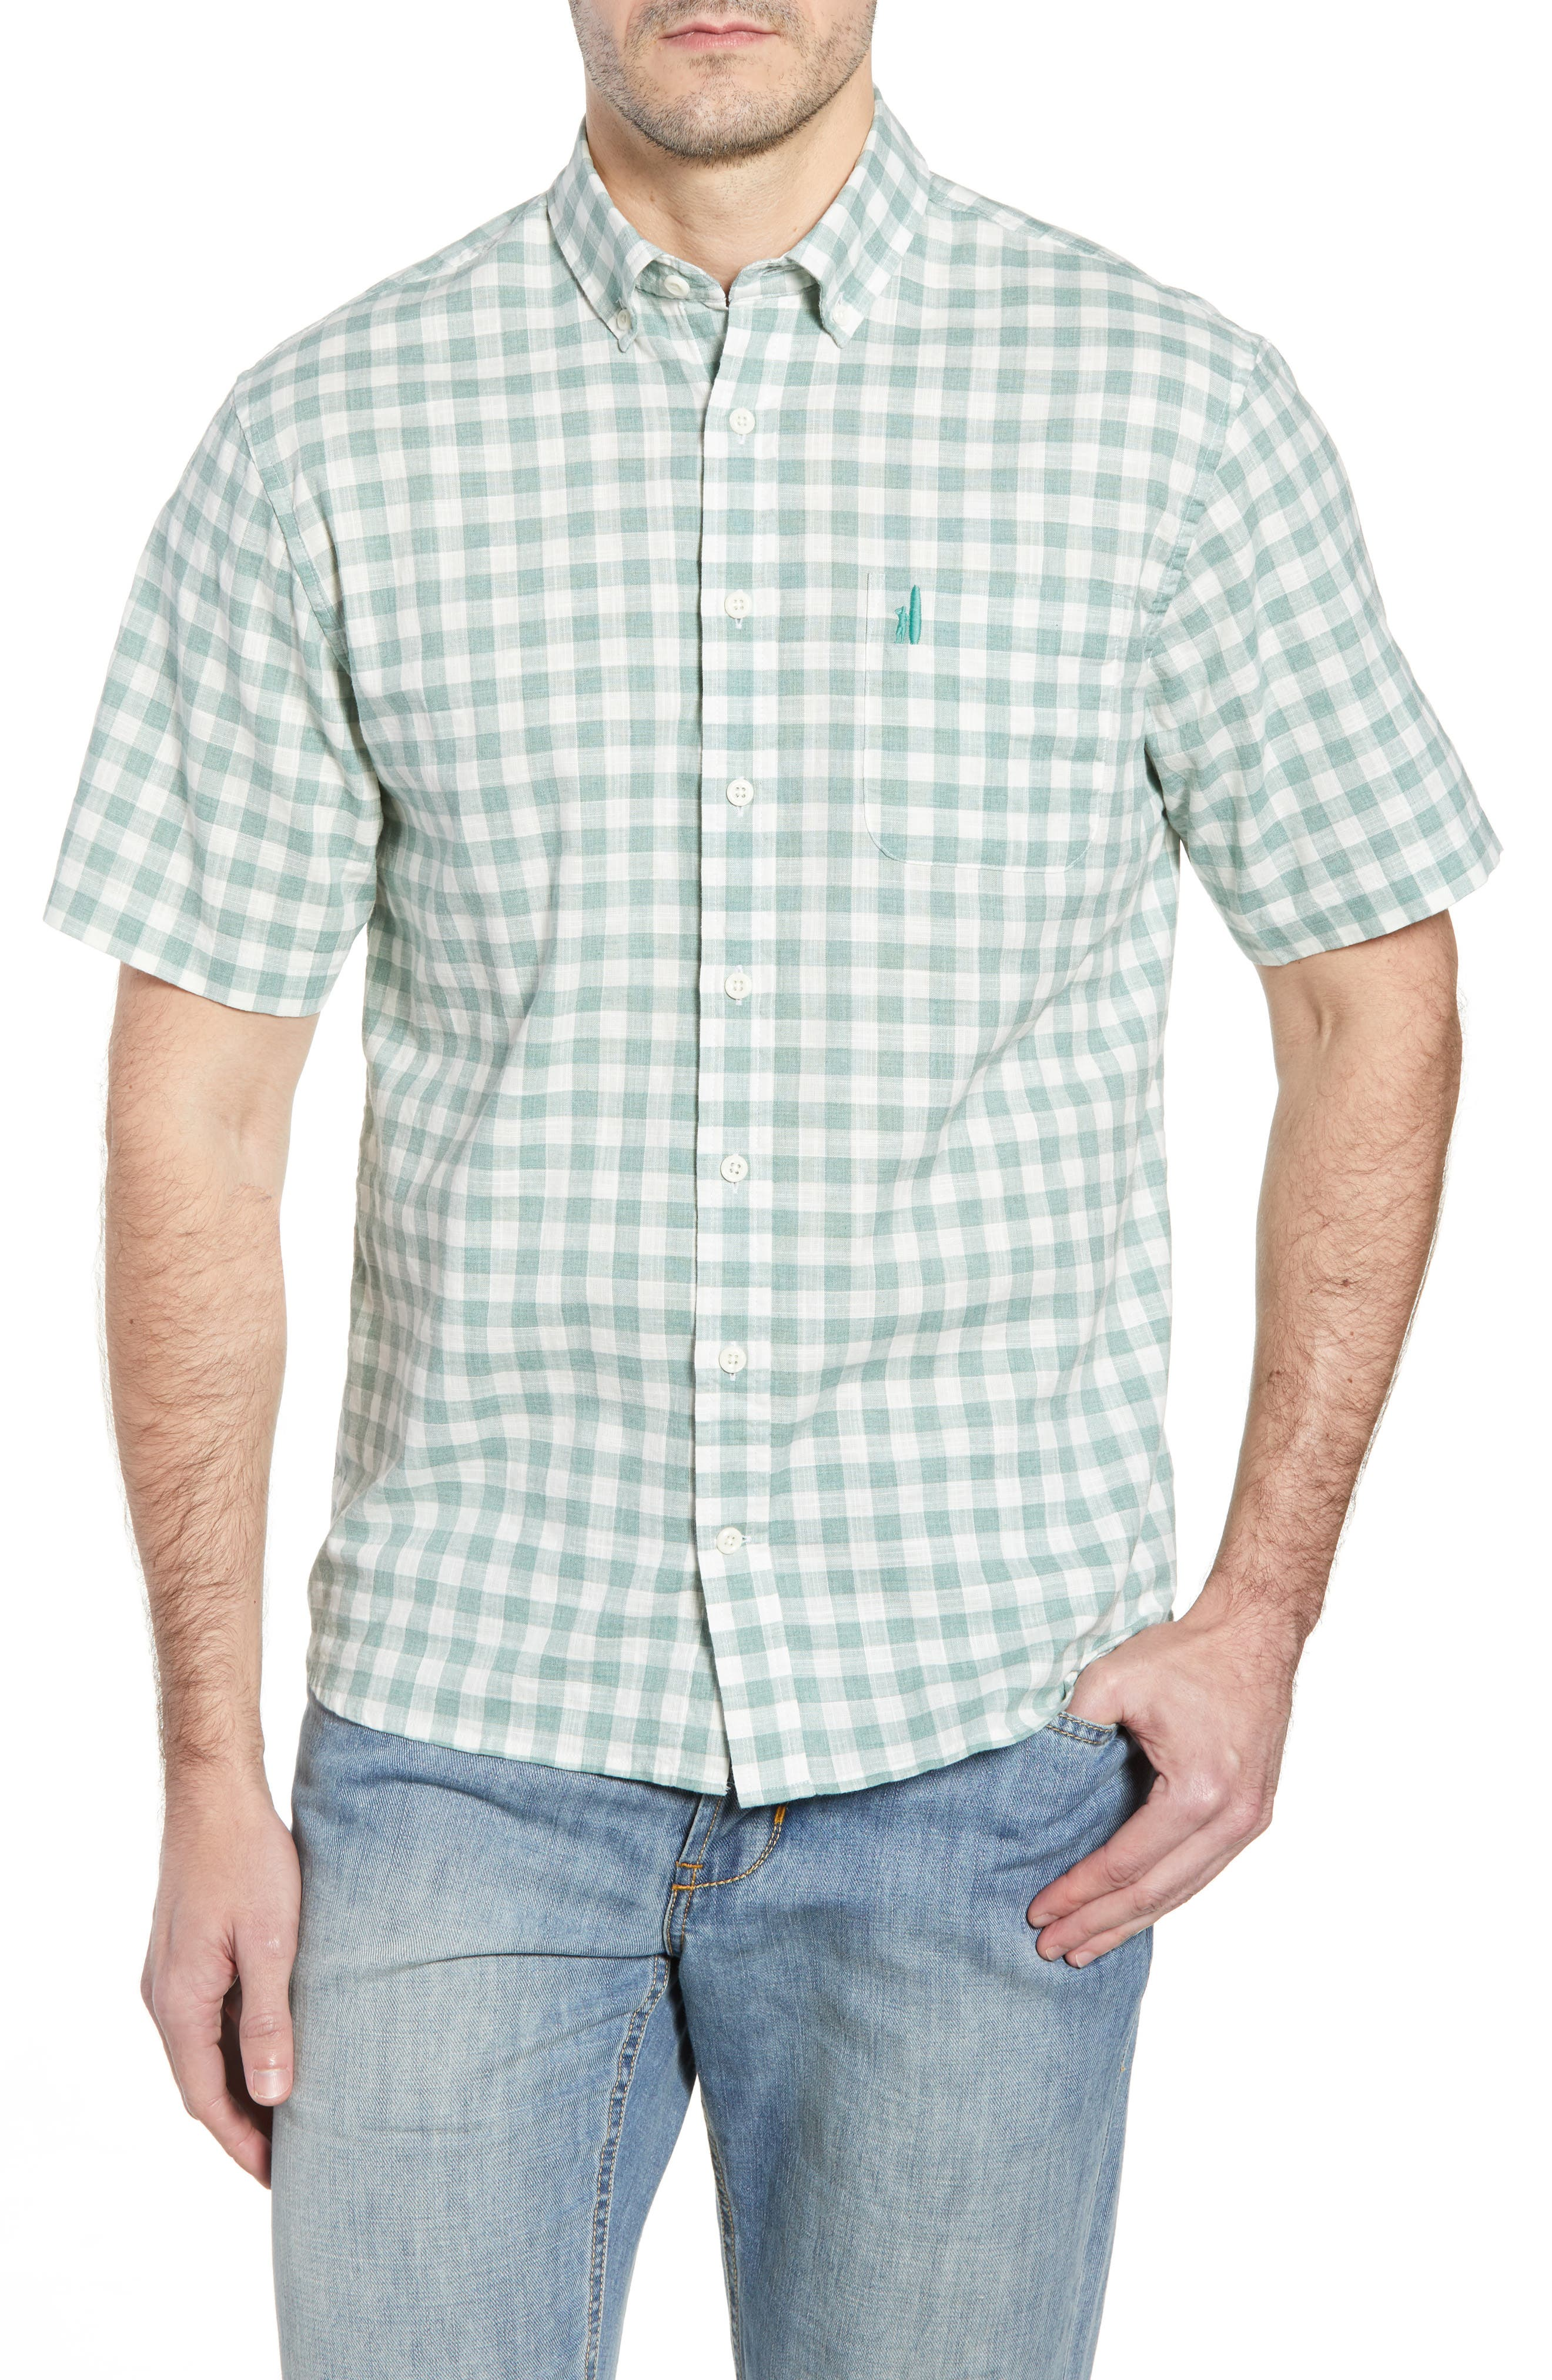 Watts Classic Fit Gingham Sport Shirt,                             Main thumbnail 1, color,                             CLOVER